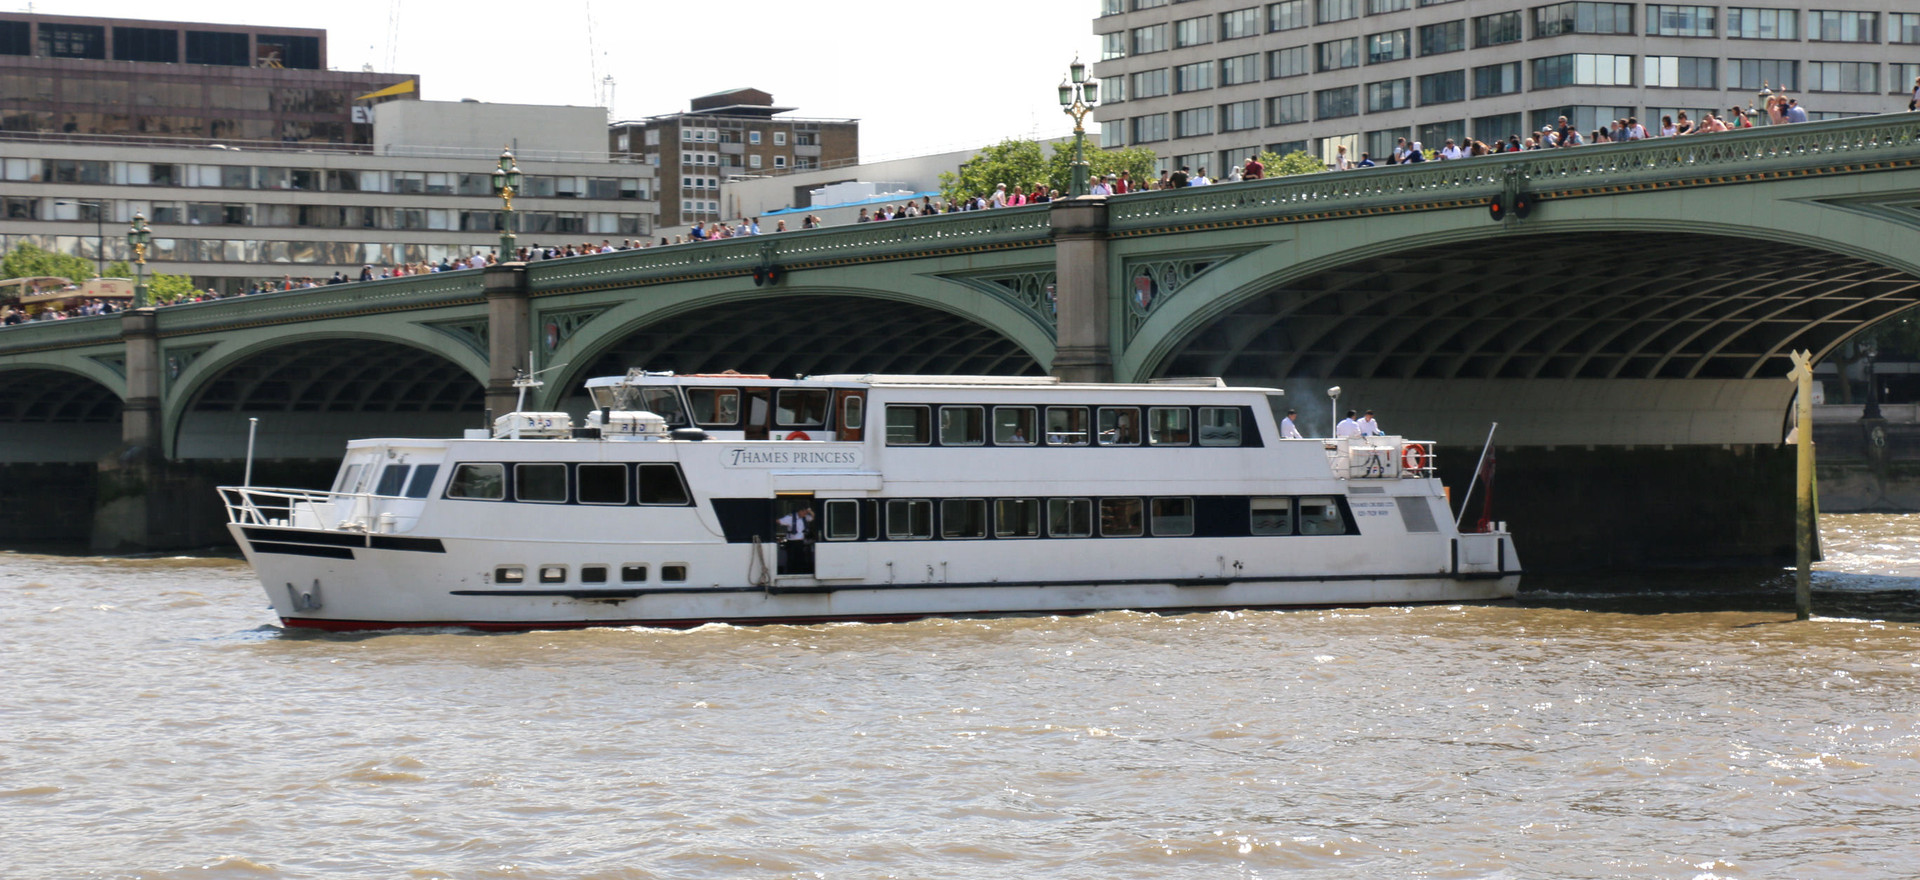 Thames River party boats